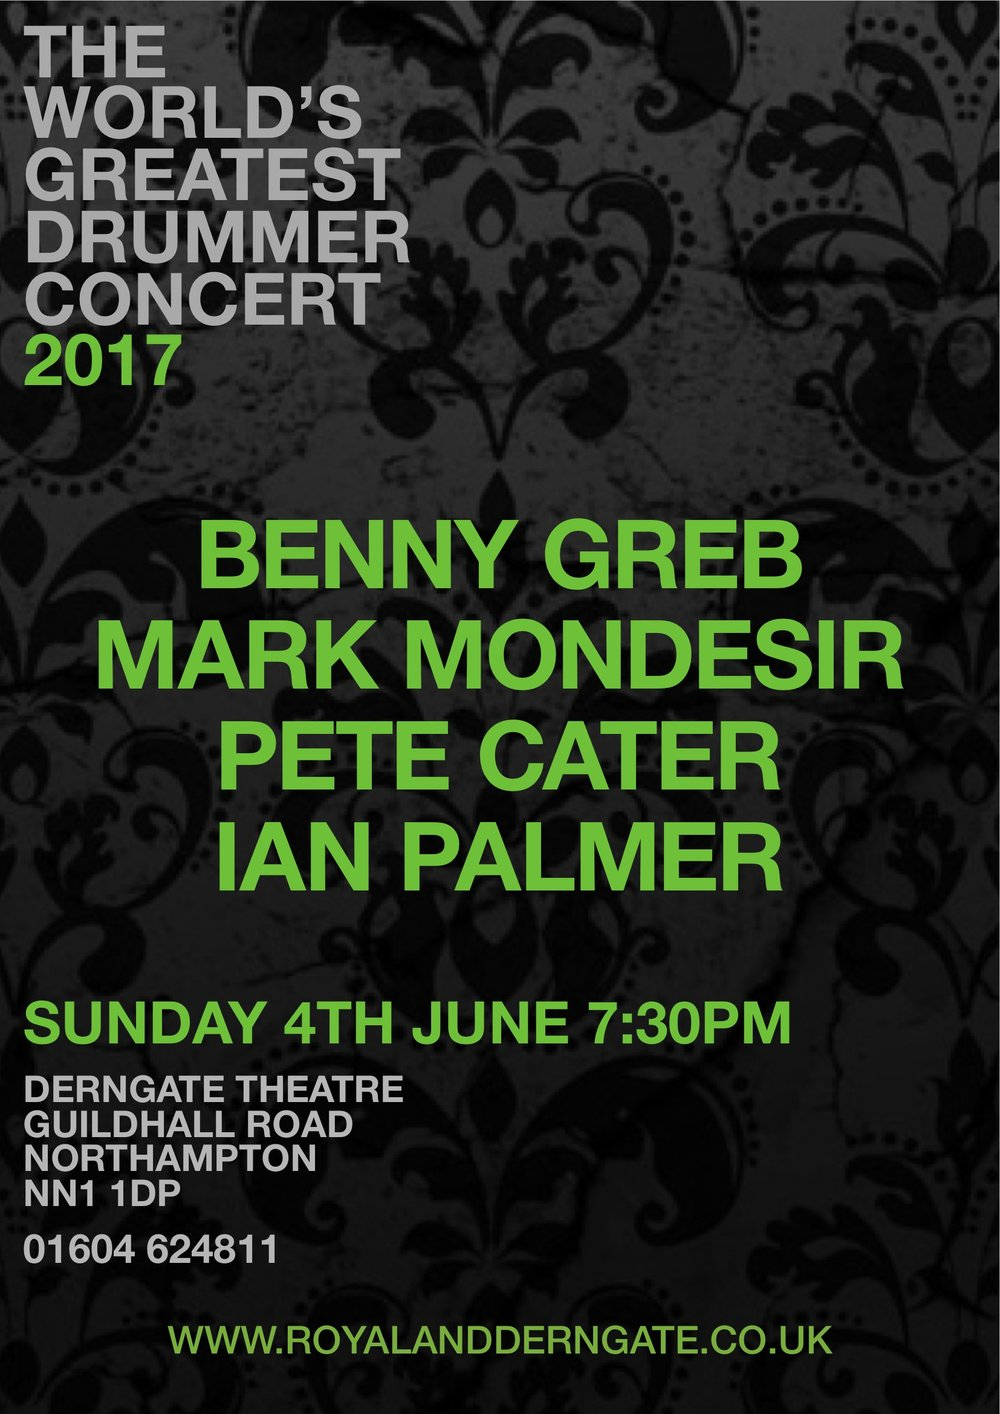 This year the World's Greatest Drummer Concert presents Benny Greb, Mark Mondesir and Pete Cater.